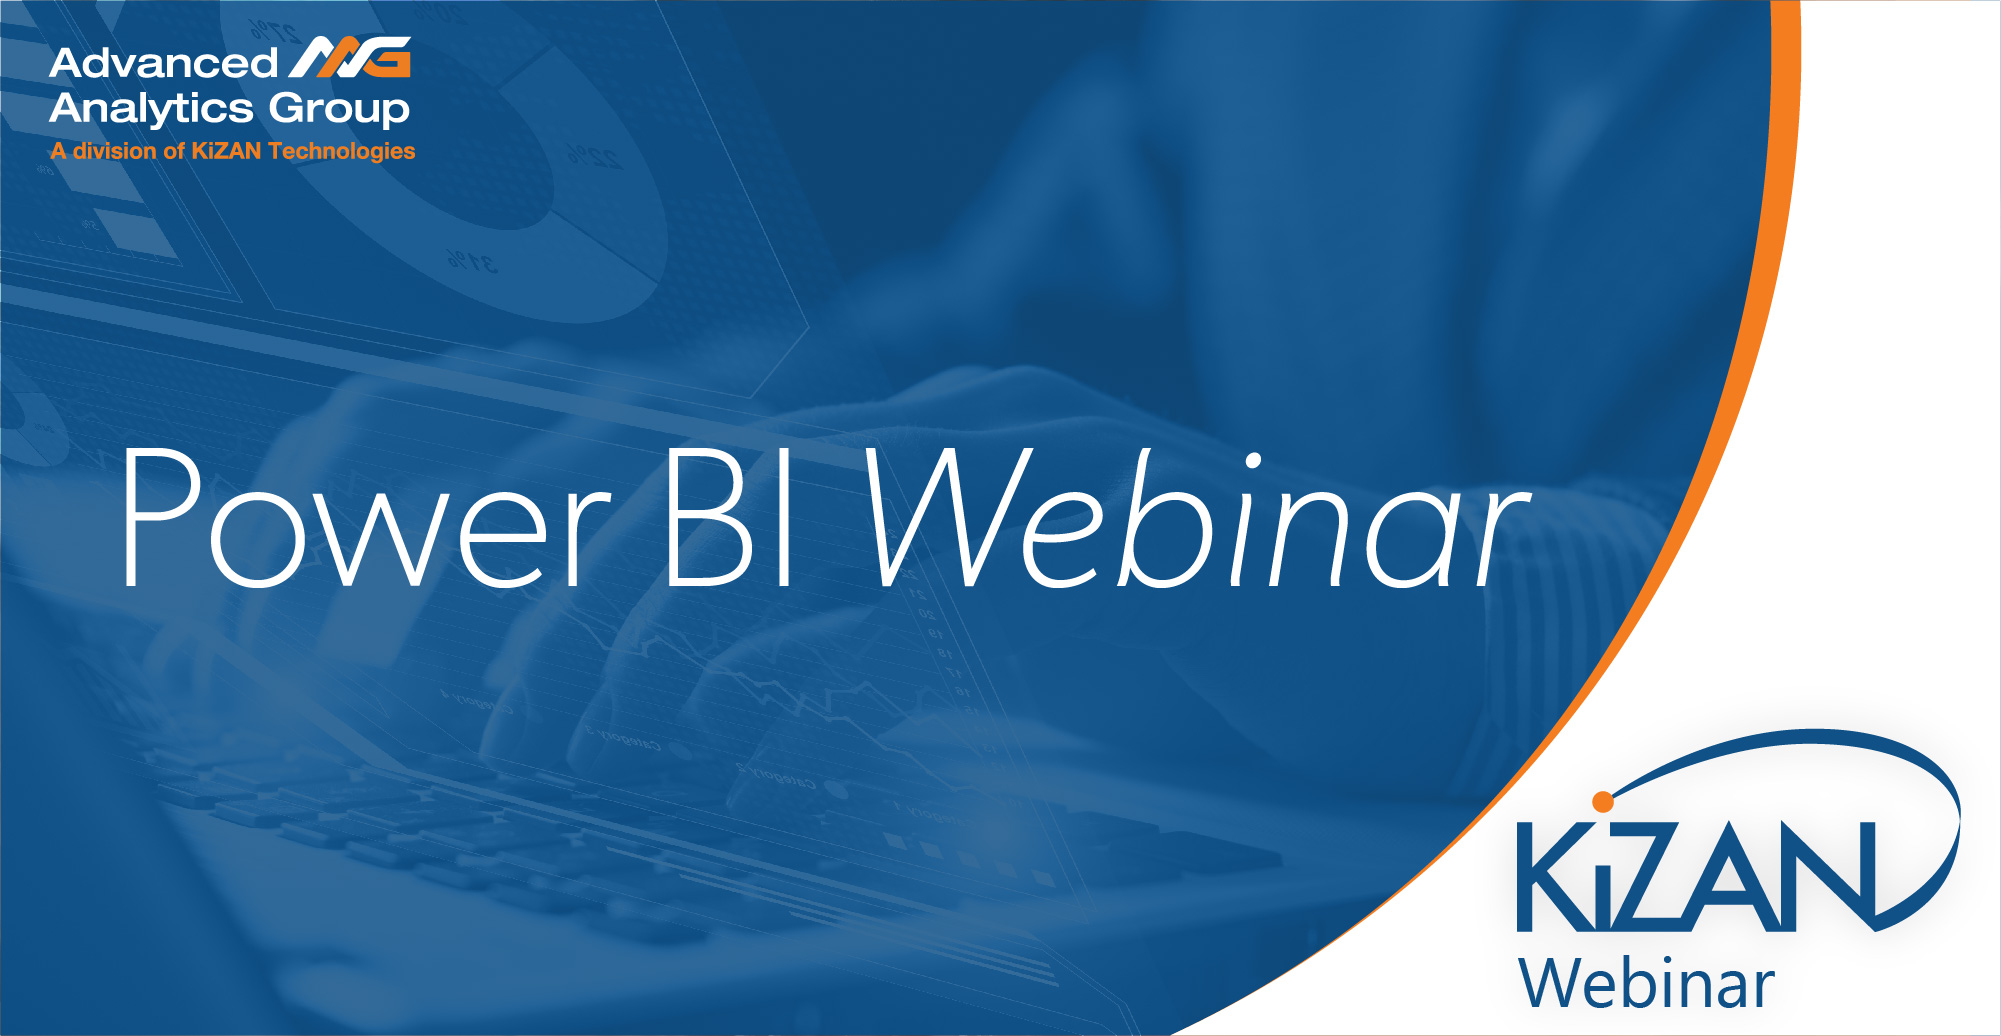 Power BI Webinar Cruise Email